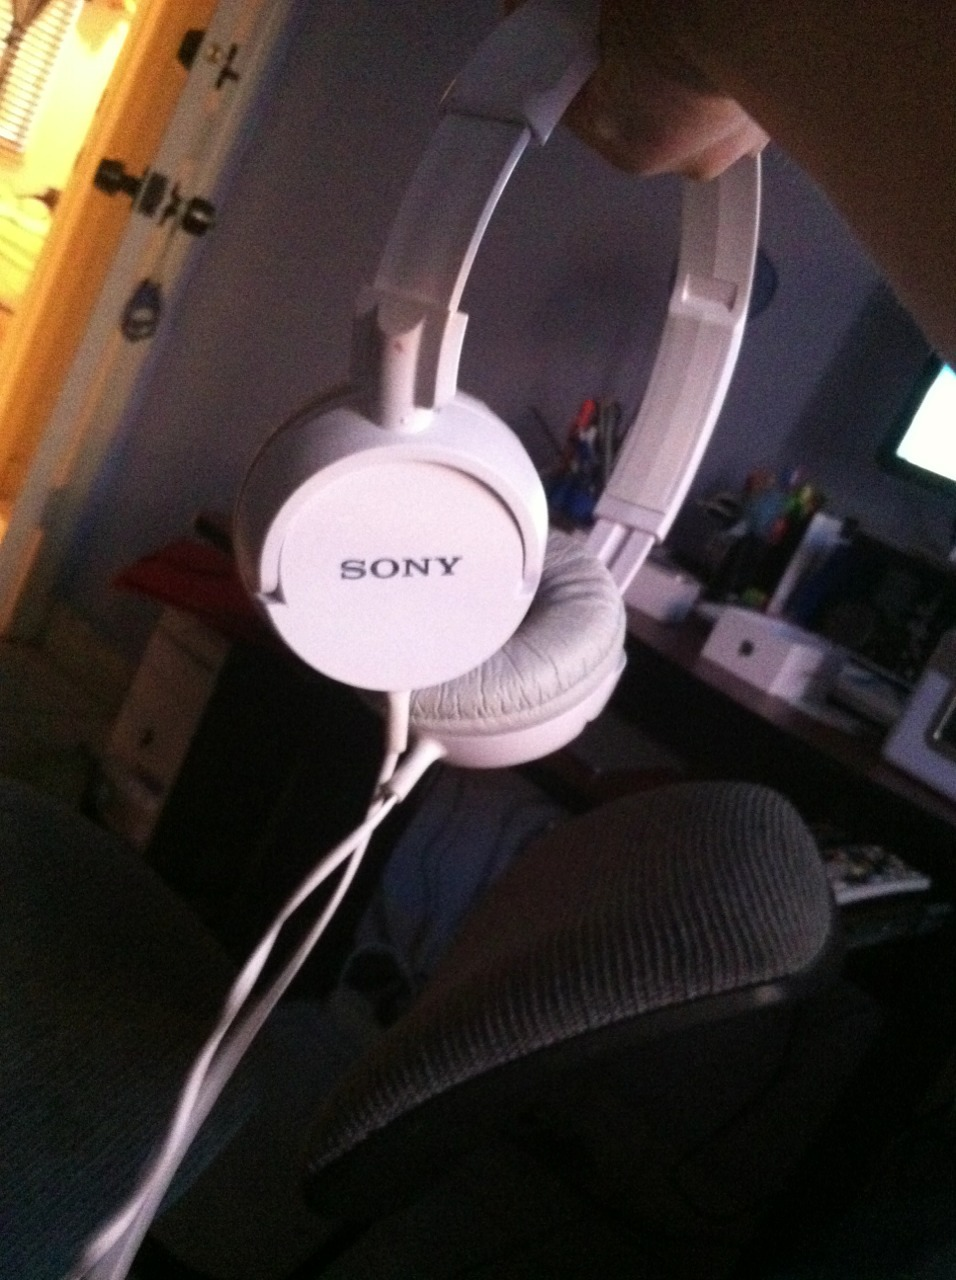 Sony headphones